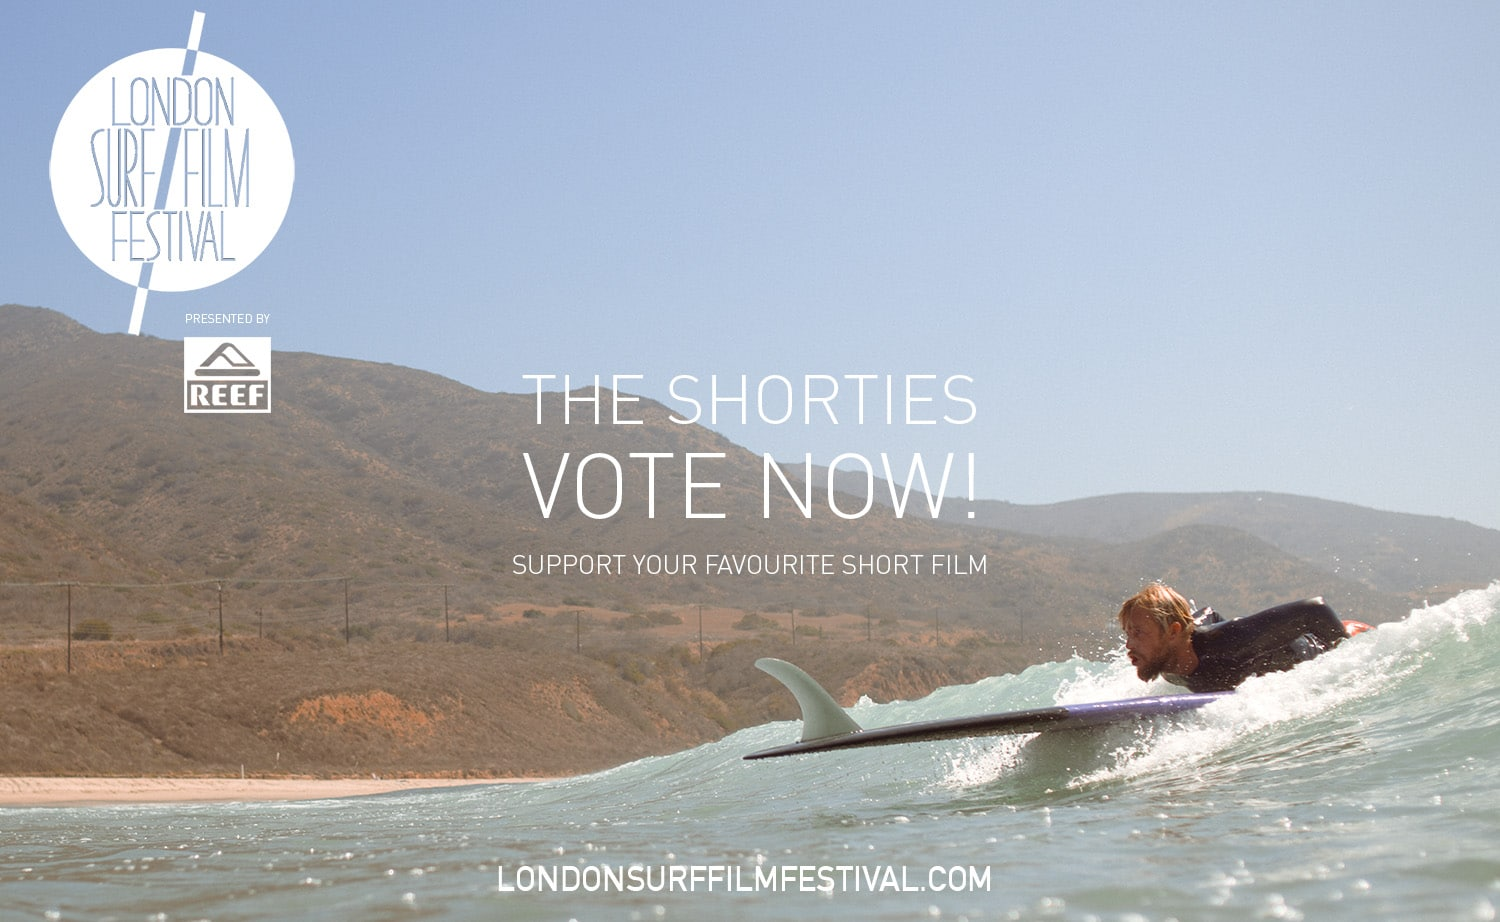 London Surf / Film Festival Shorties: Short film contest celebrating the very best of British & Irish homegrown surf filmmaking - animation, drama, action, comedy, documentary, travelogue & more